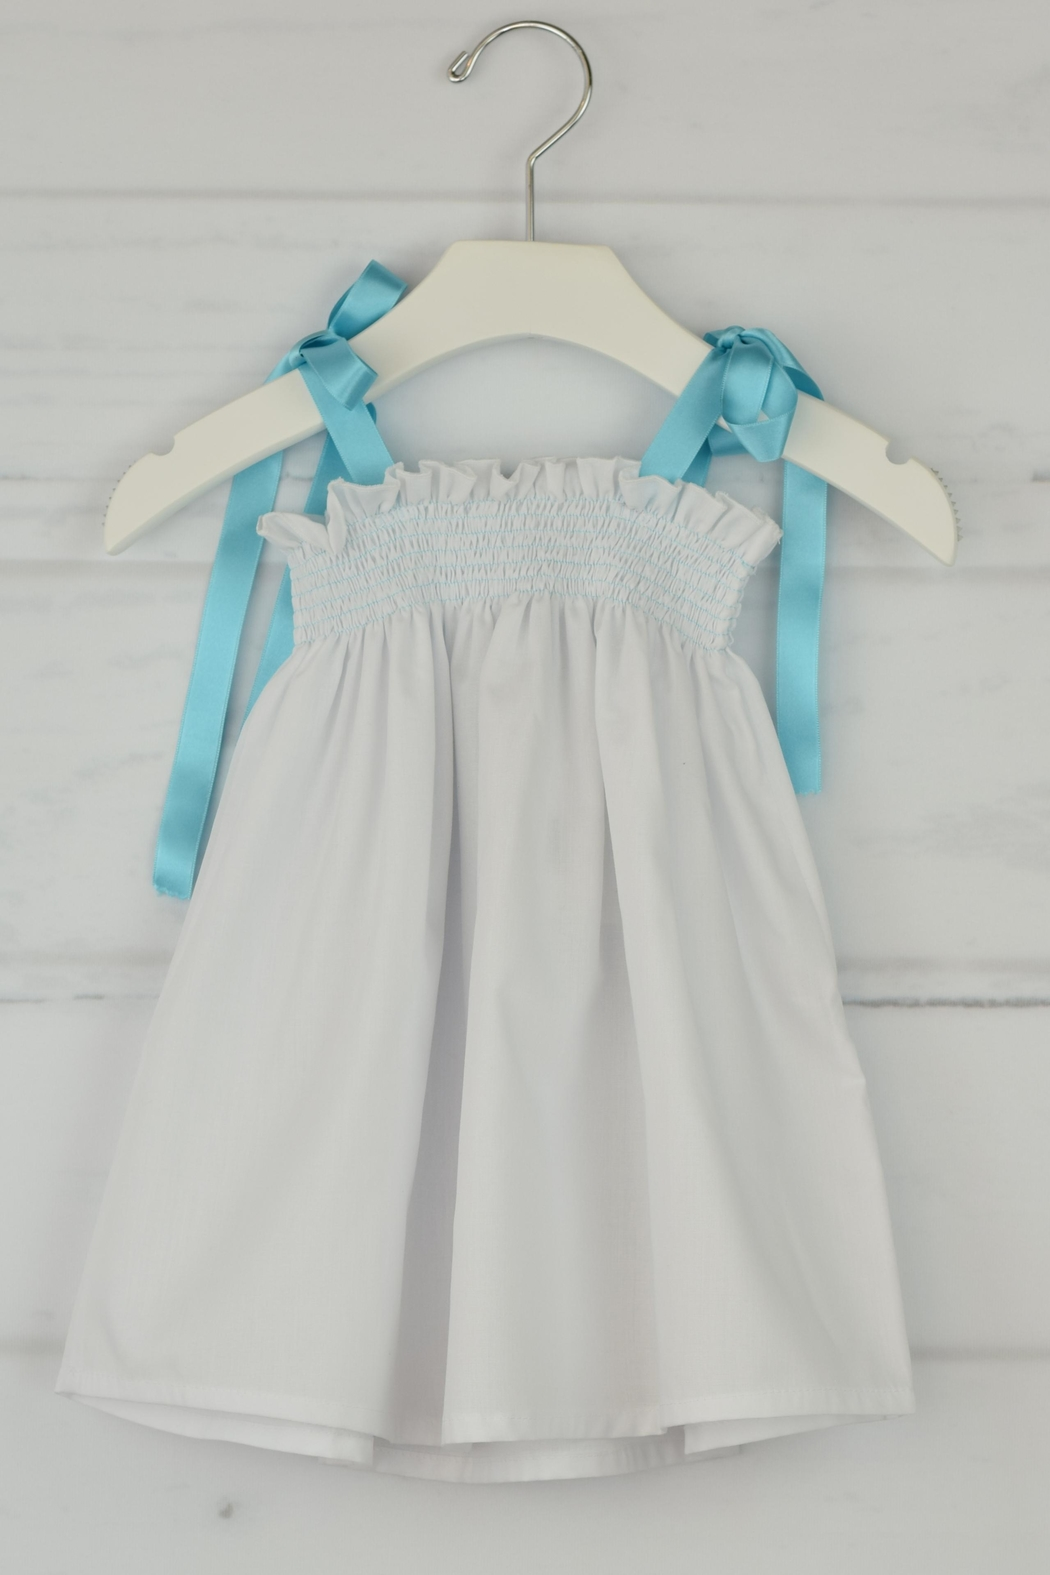 Granlei 1980 White & Aqua Dress - Main Image